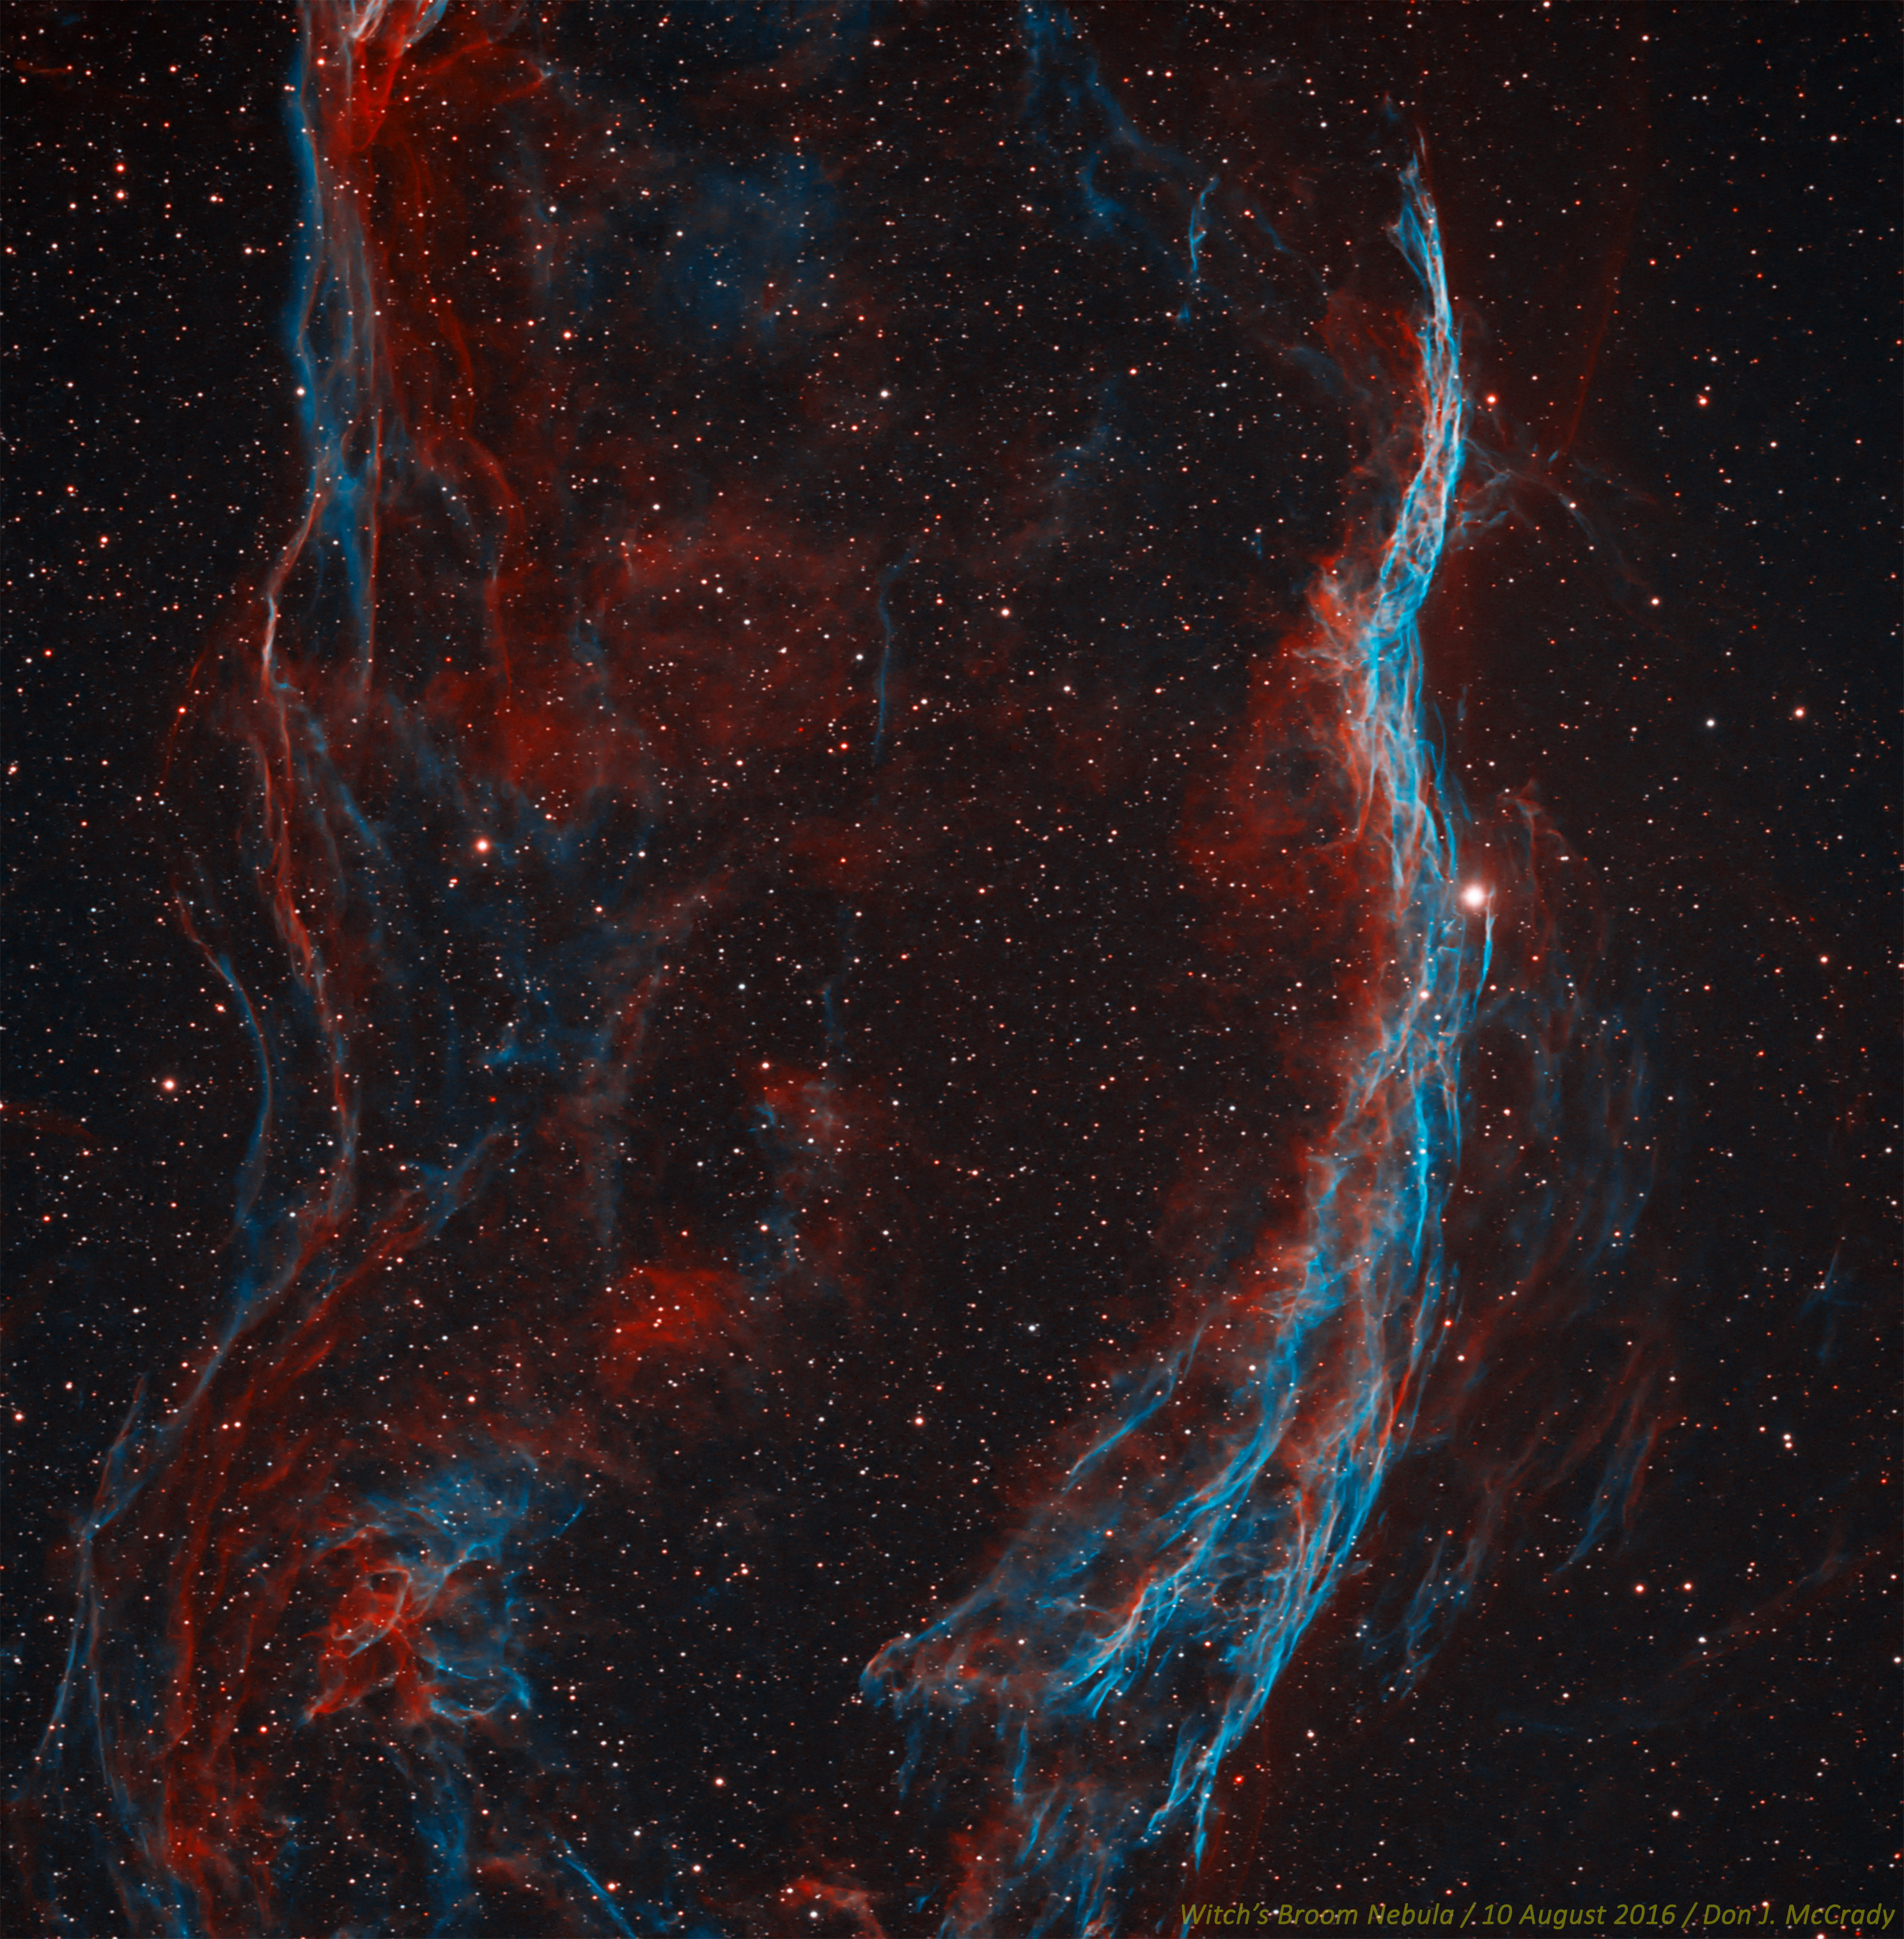 The Witch's Broom Nebula is also part of the famous Veil Nebula complex, this being the western portion. The entire complex is the remnant of a powerful supernova explosion which occurred thousands of years ago, sending elements forged in the destroyed stars core into space. The bright star is 52 Cygni. Hydrogen-alpha was used as the red channel, while Oxygen-III was used as the blue and green channels. Taken with a Stellarvue SVS130 and STL-4020M. Processed in MaximDL and Photoshop, and upsampled 1.5x.